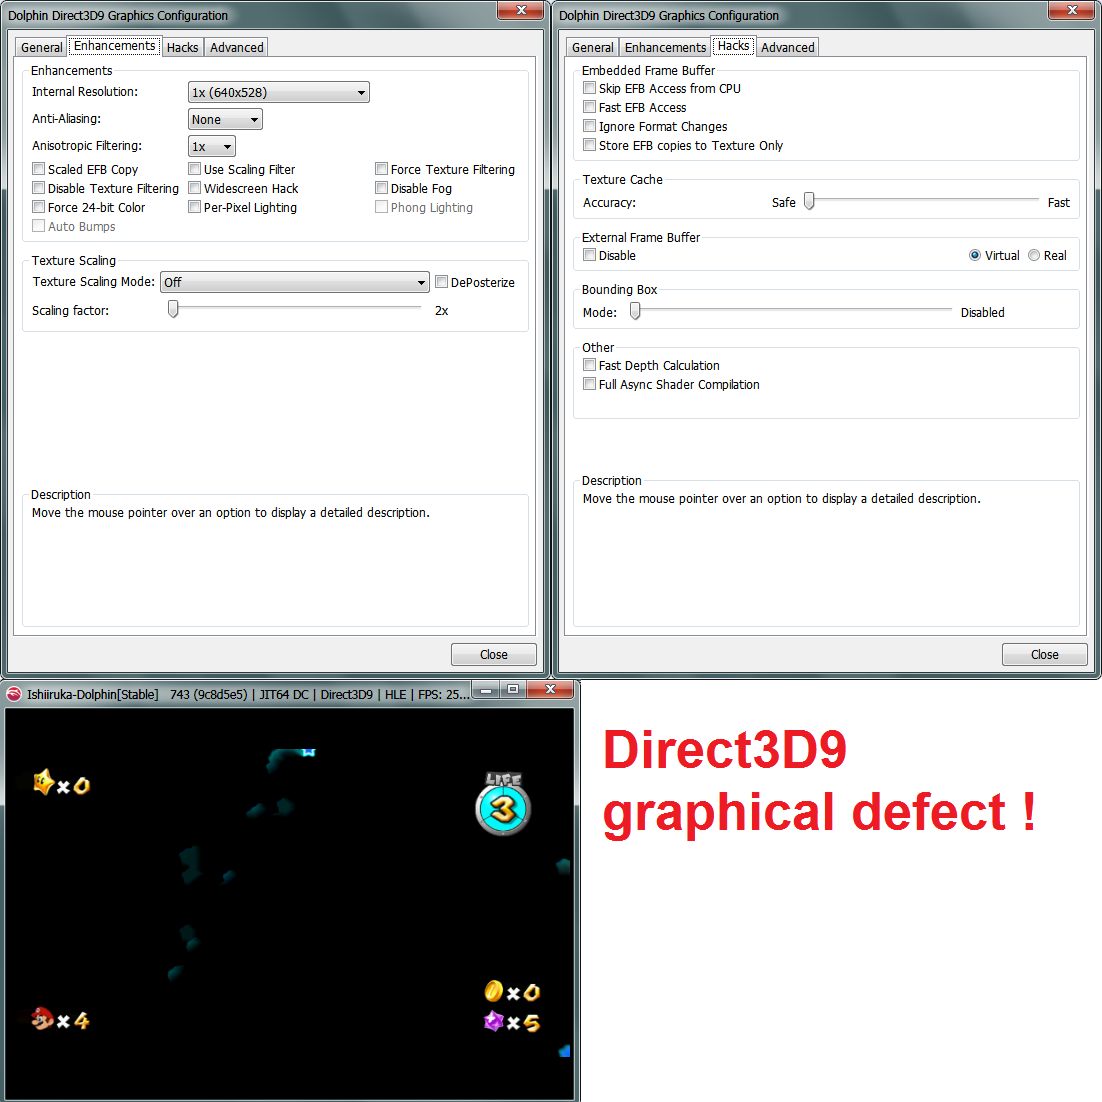 dolphin direct3d9